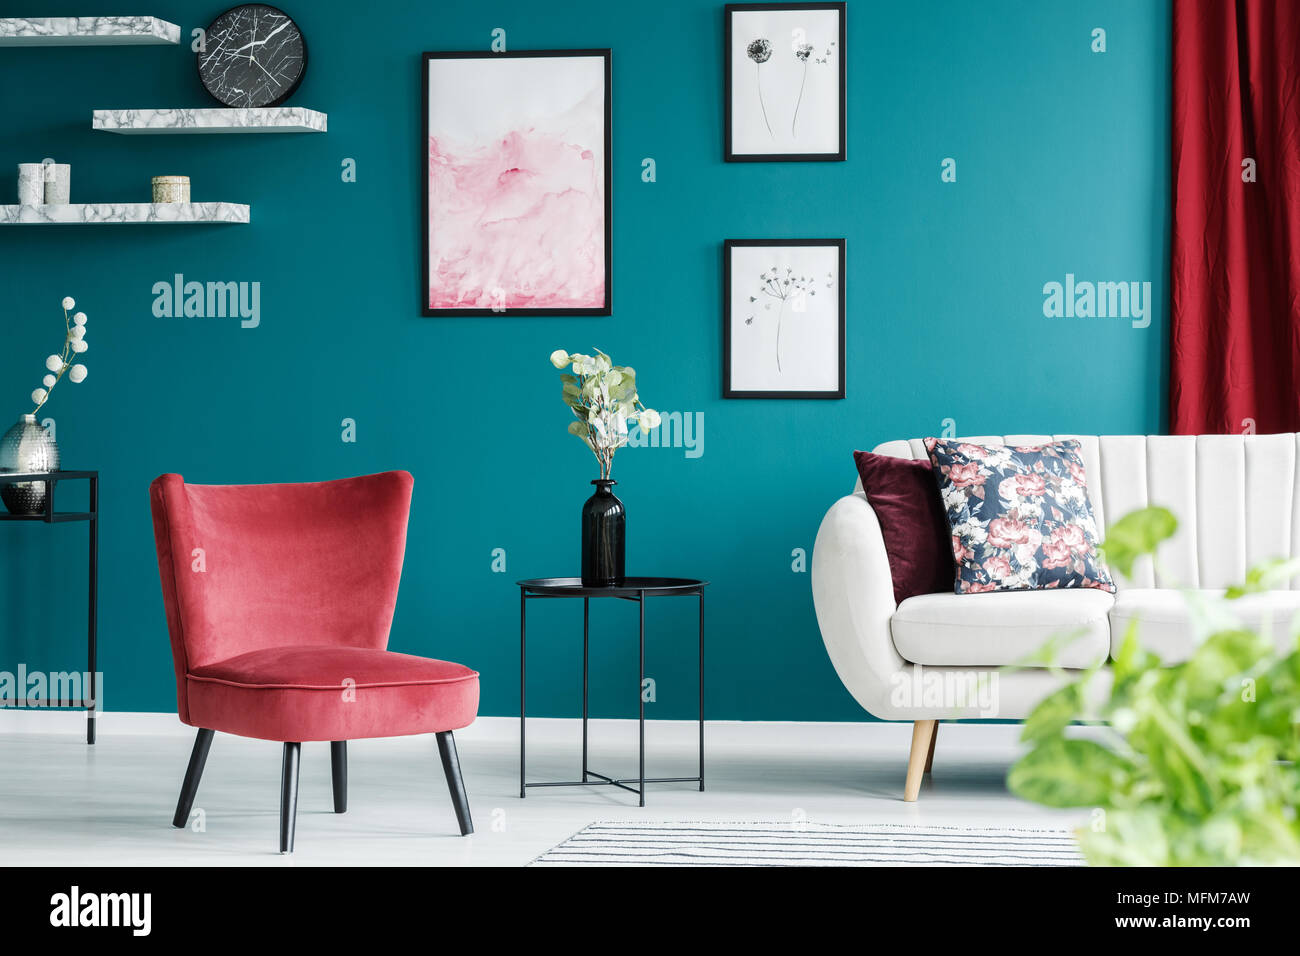 Red Armchair, White Sofa, Paintings And Black Table In A Green Living Room  Interior